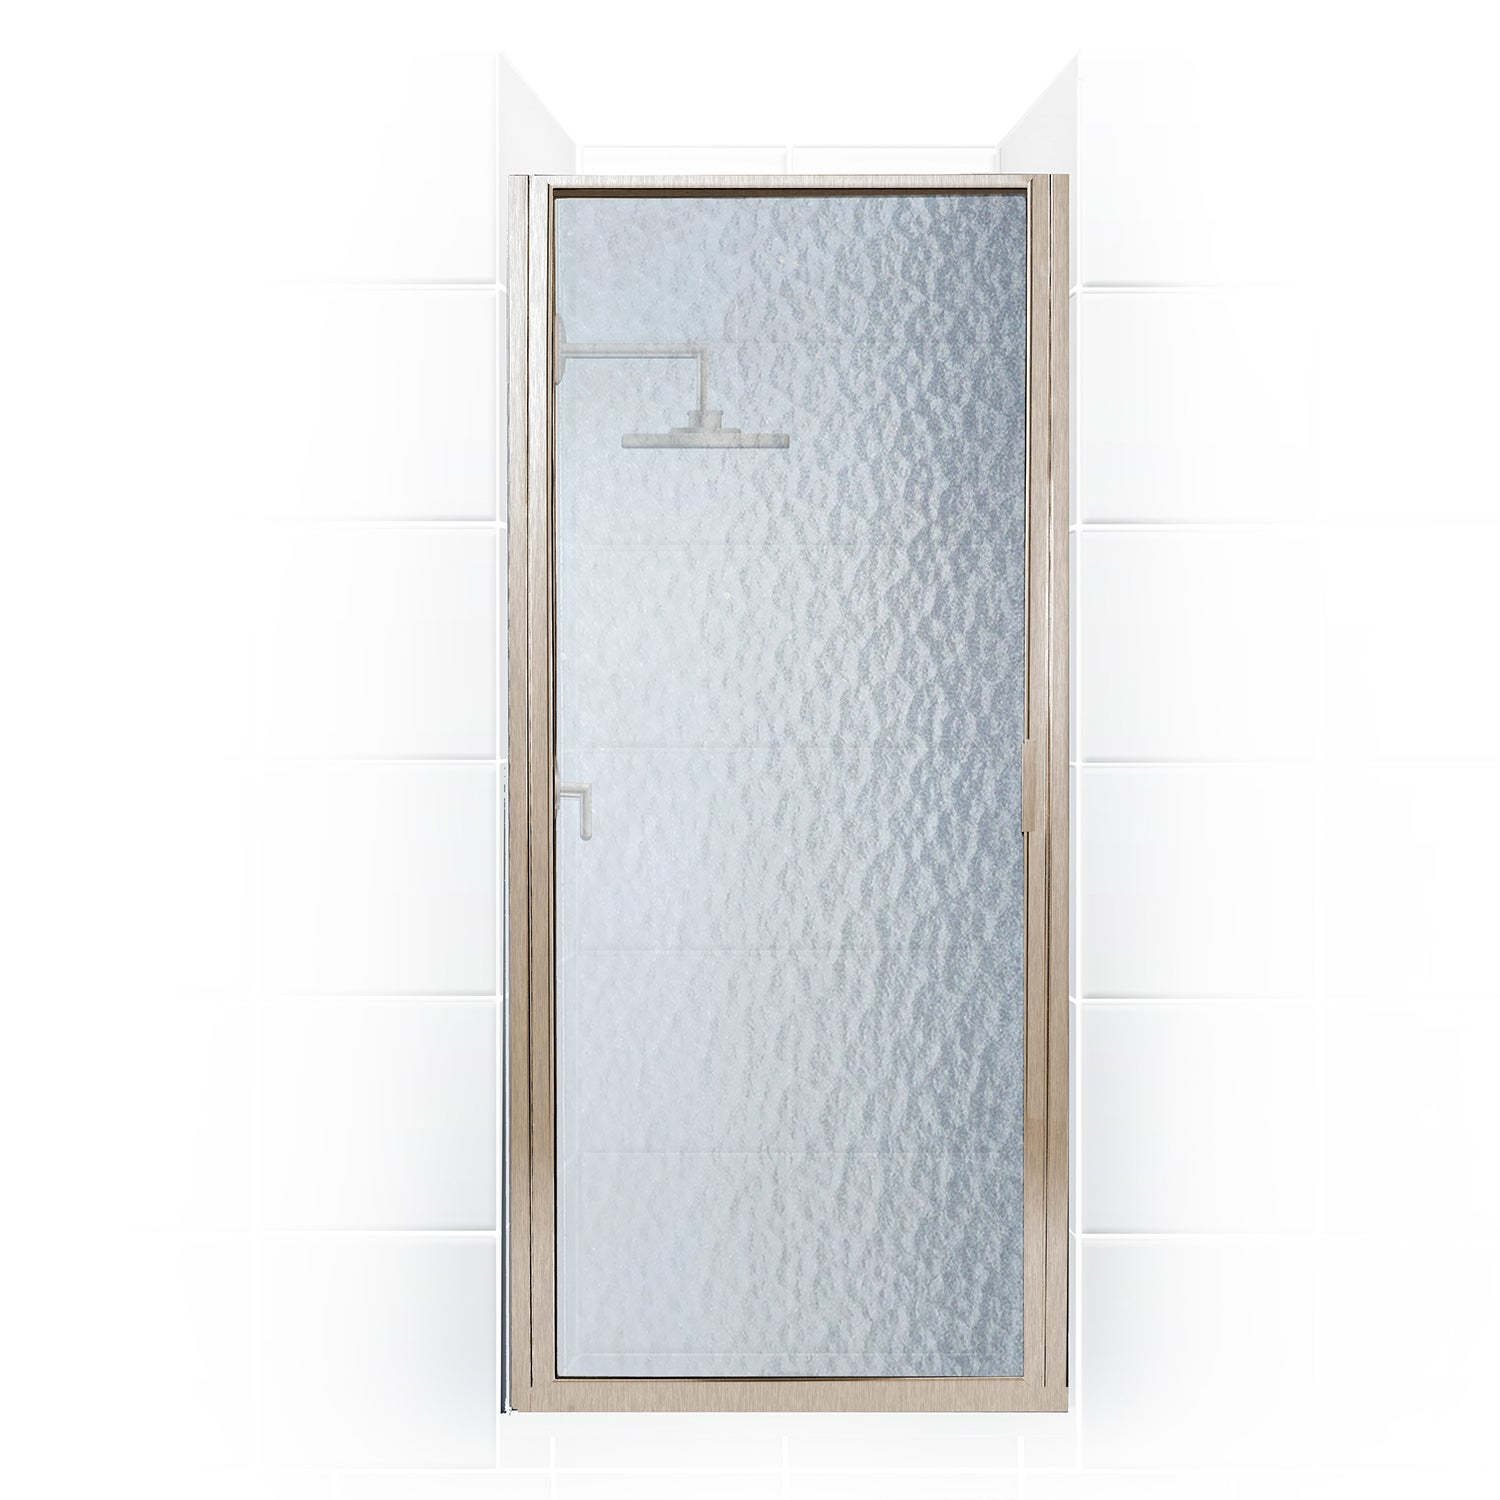 Paragon Series 30 Inch X 82 Inch Framed Continuous Hinge Shower Door Overstock 10680576